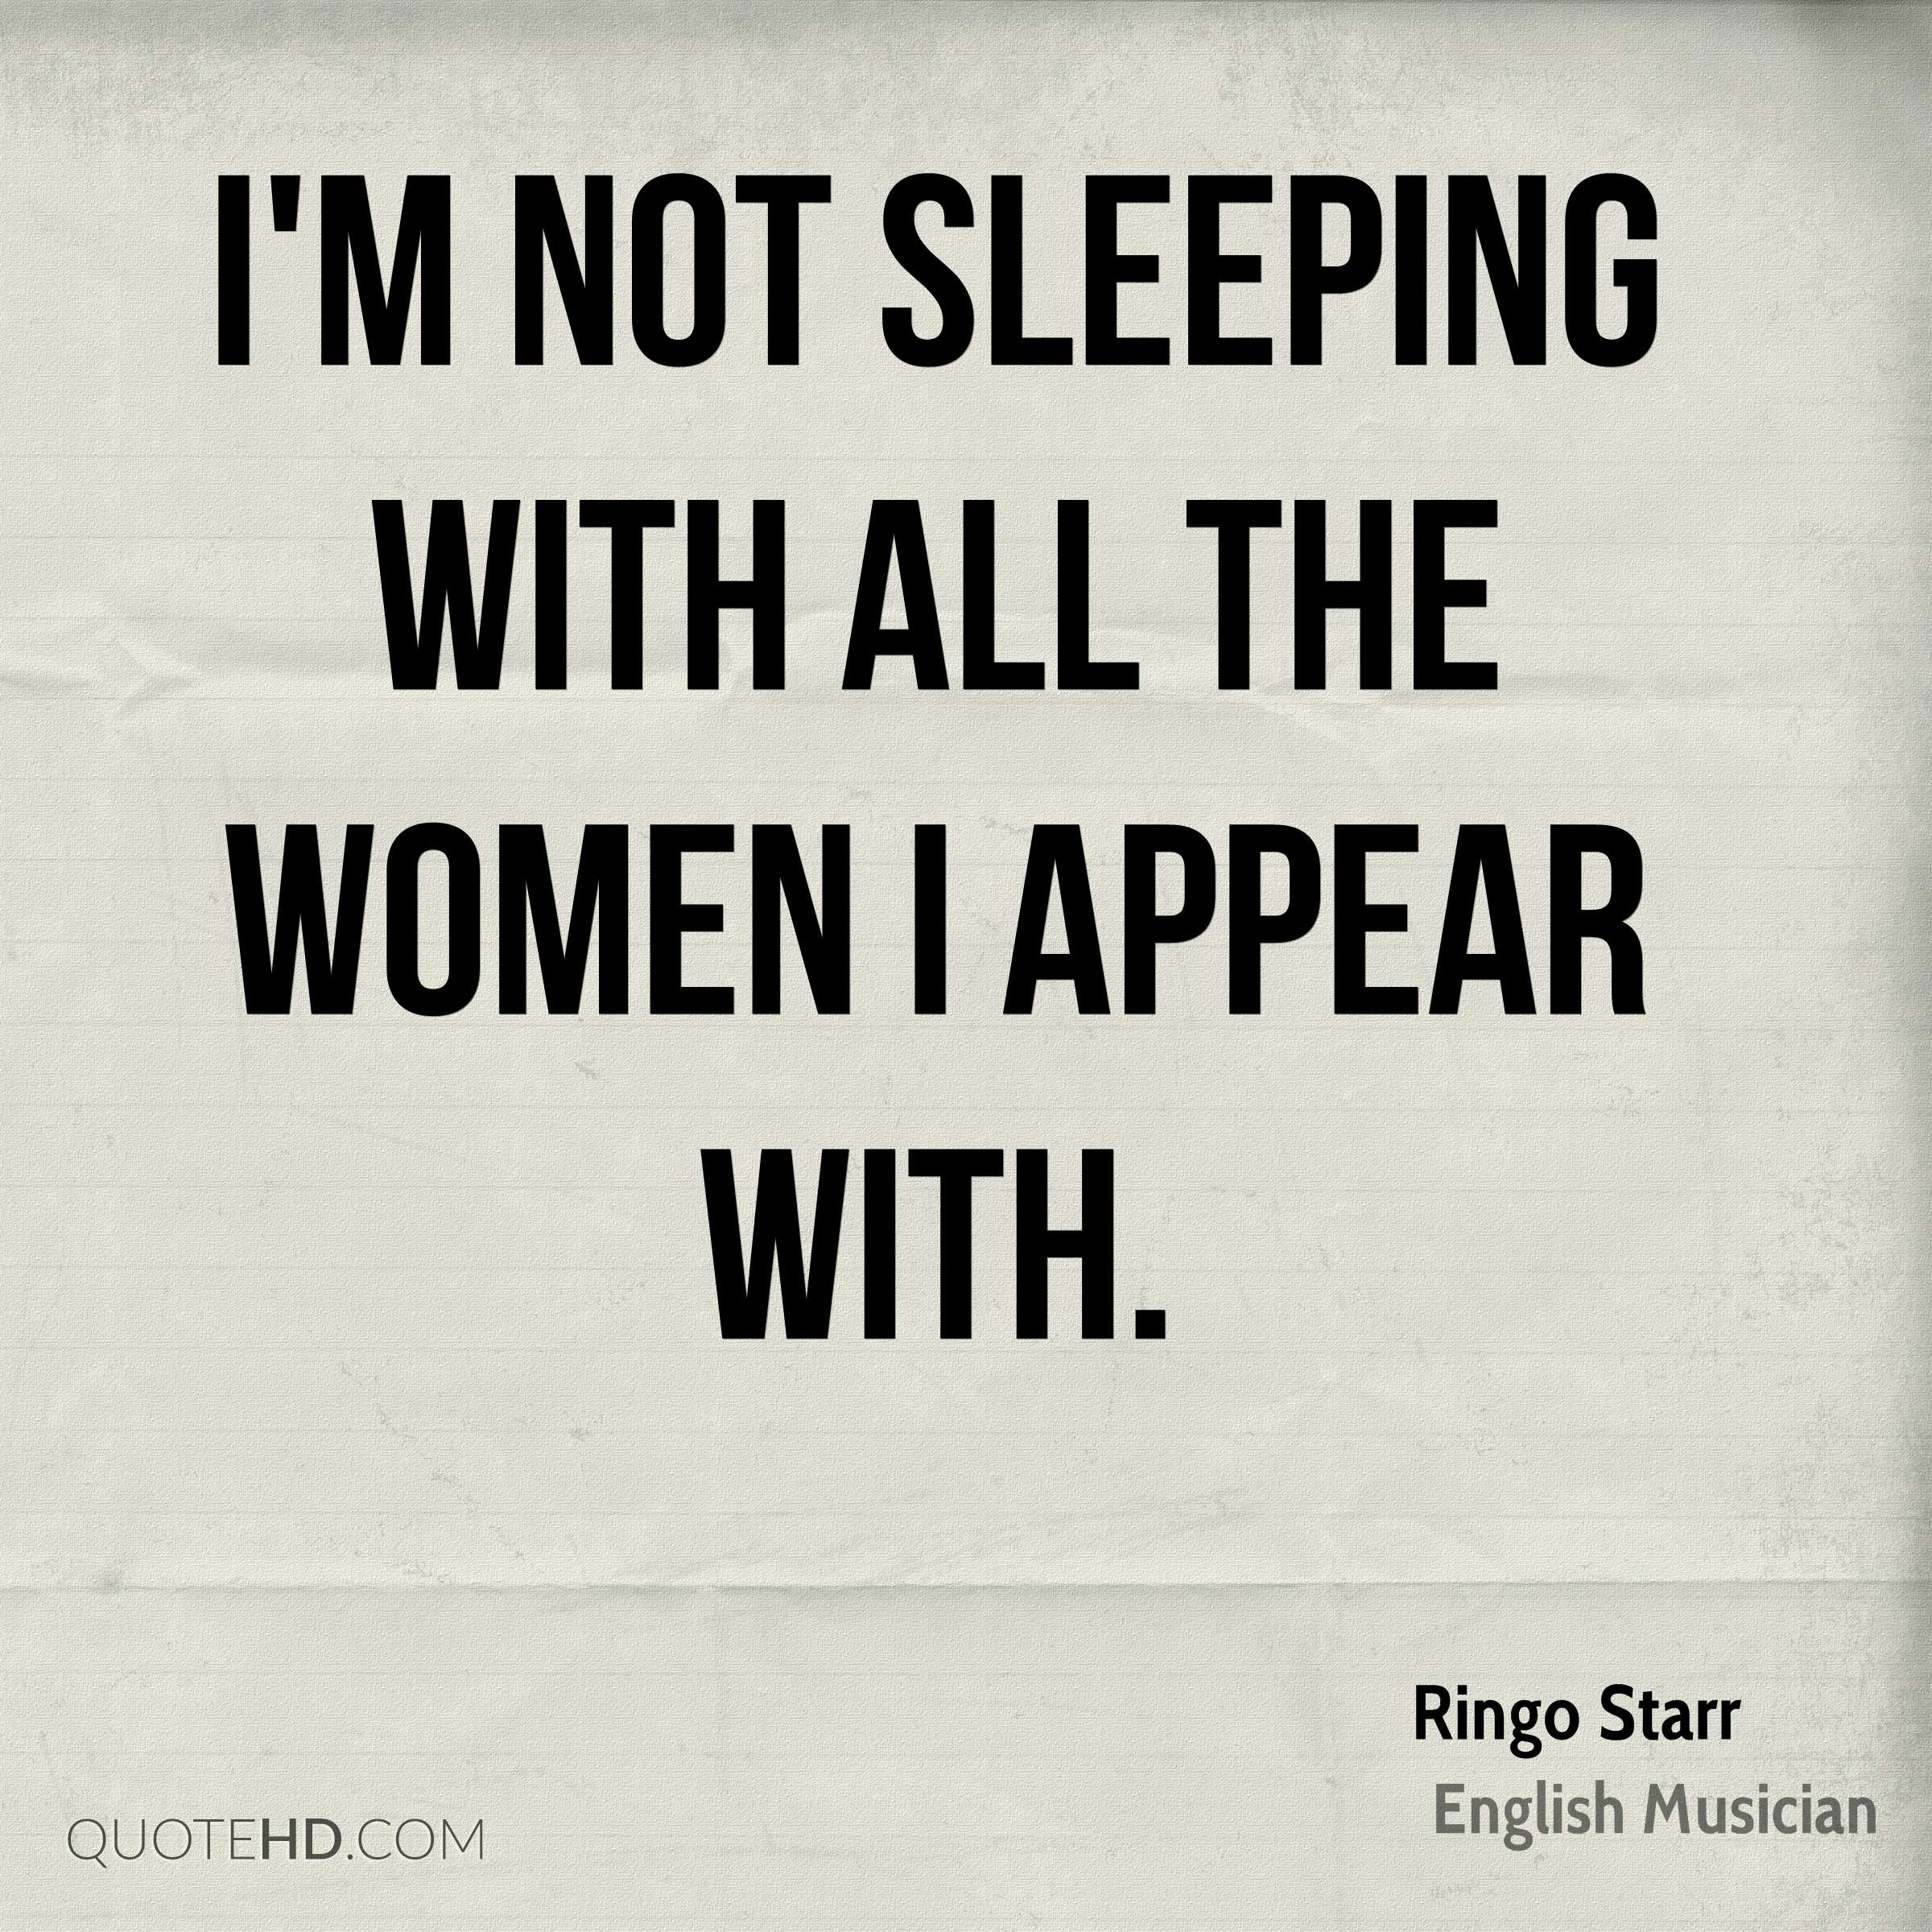 Quotes About Not Sleeping Quotes About Not Sleeping Alluring 30 I Can't Sleep Quotes That